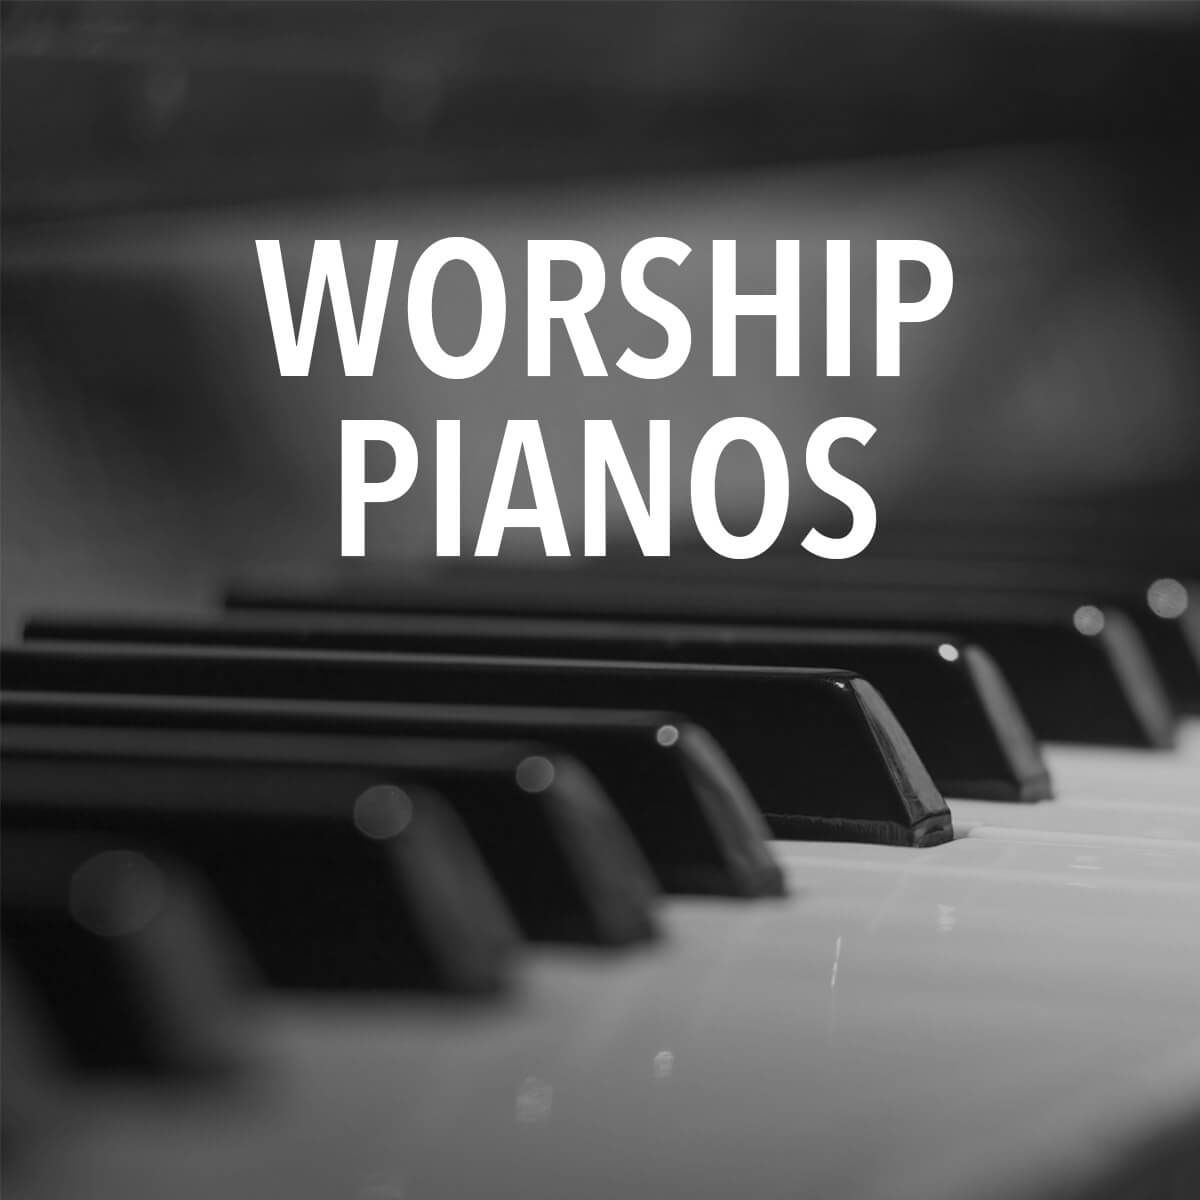 Worship Pianos - MainStage Patch Kit